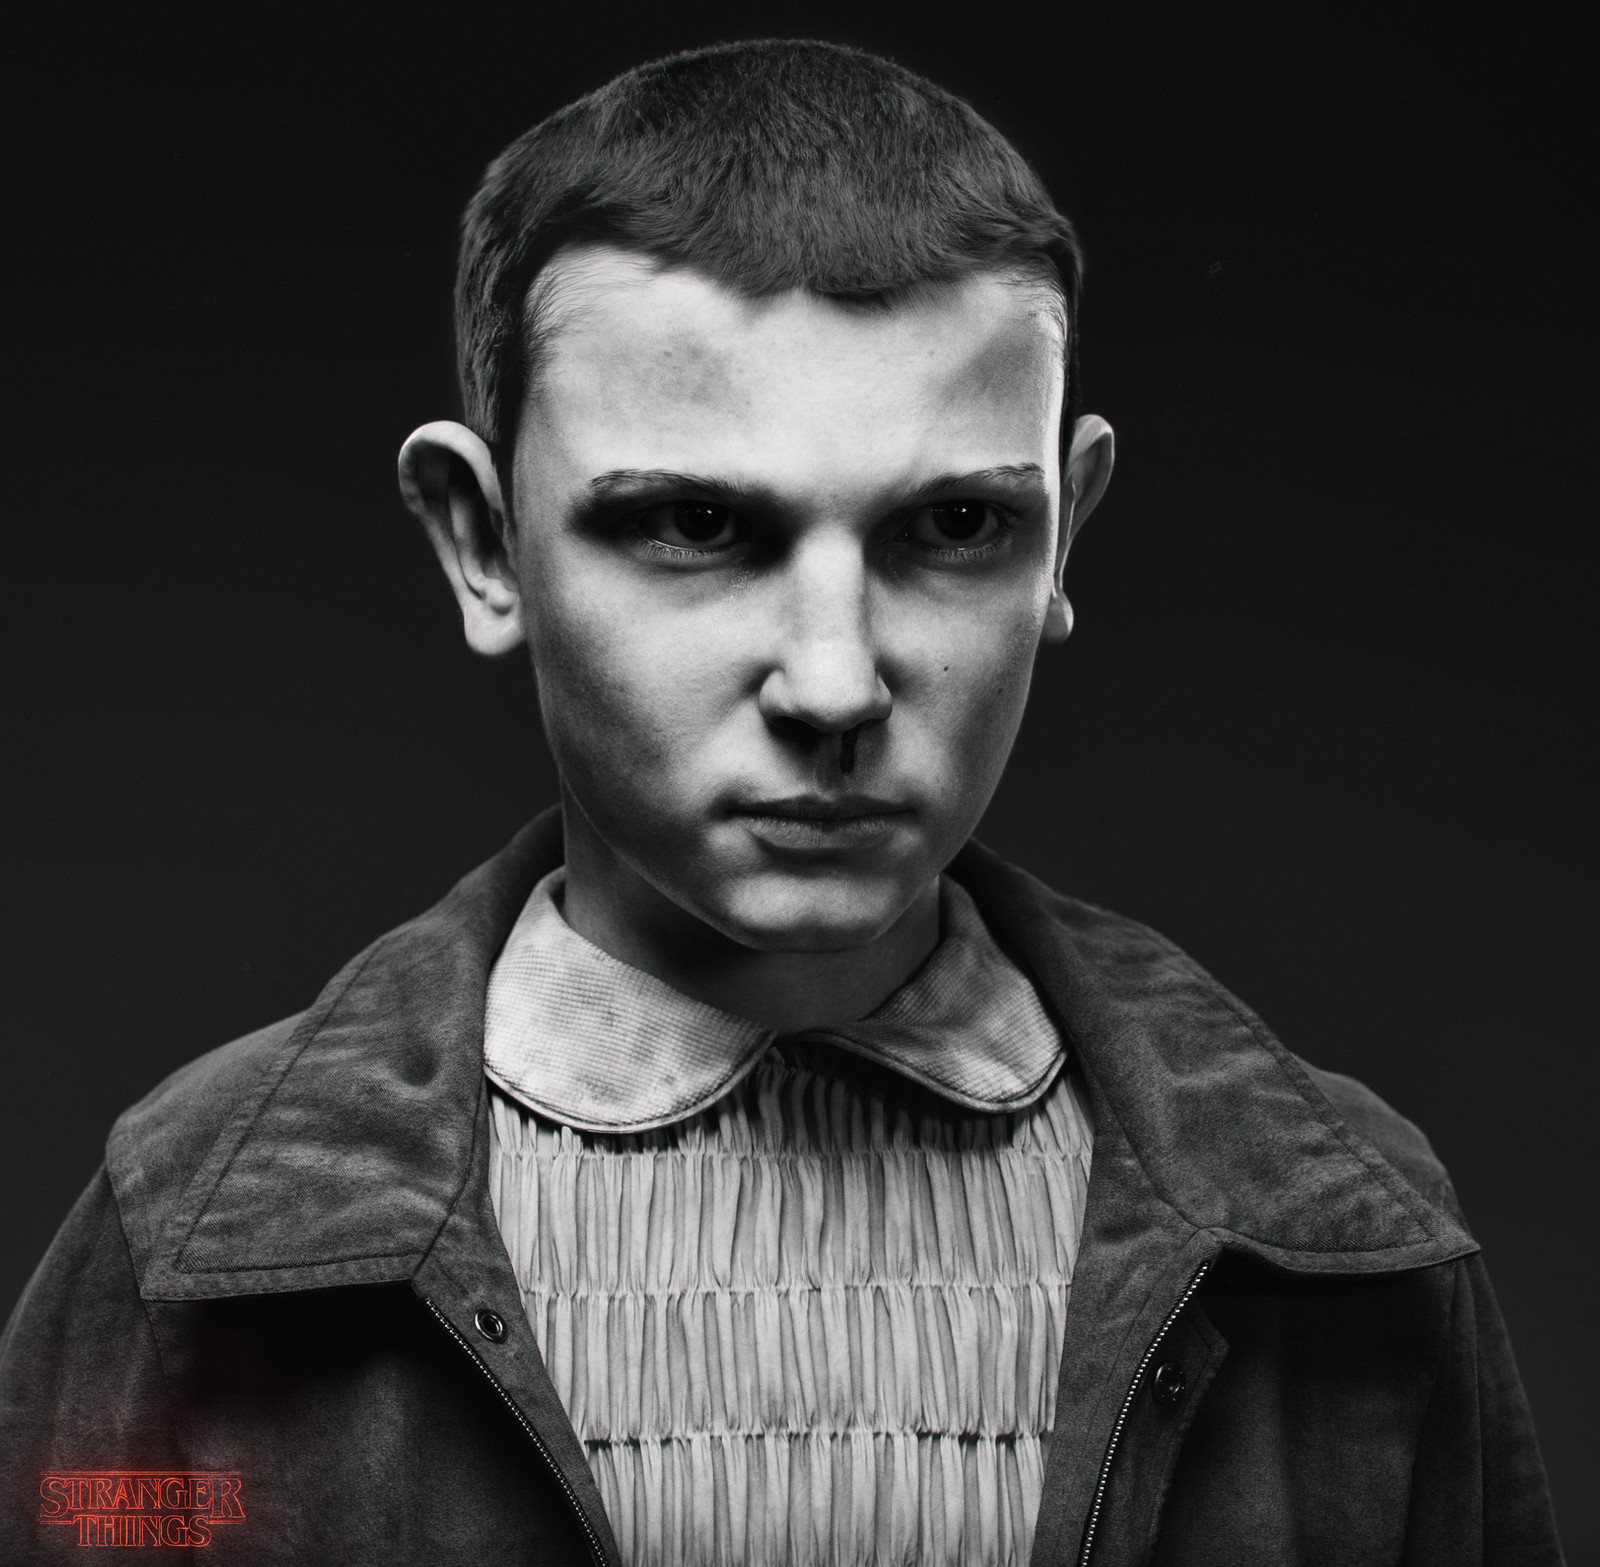 Stranger Things - Eleven portrait